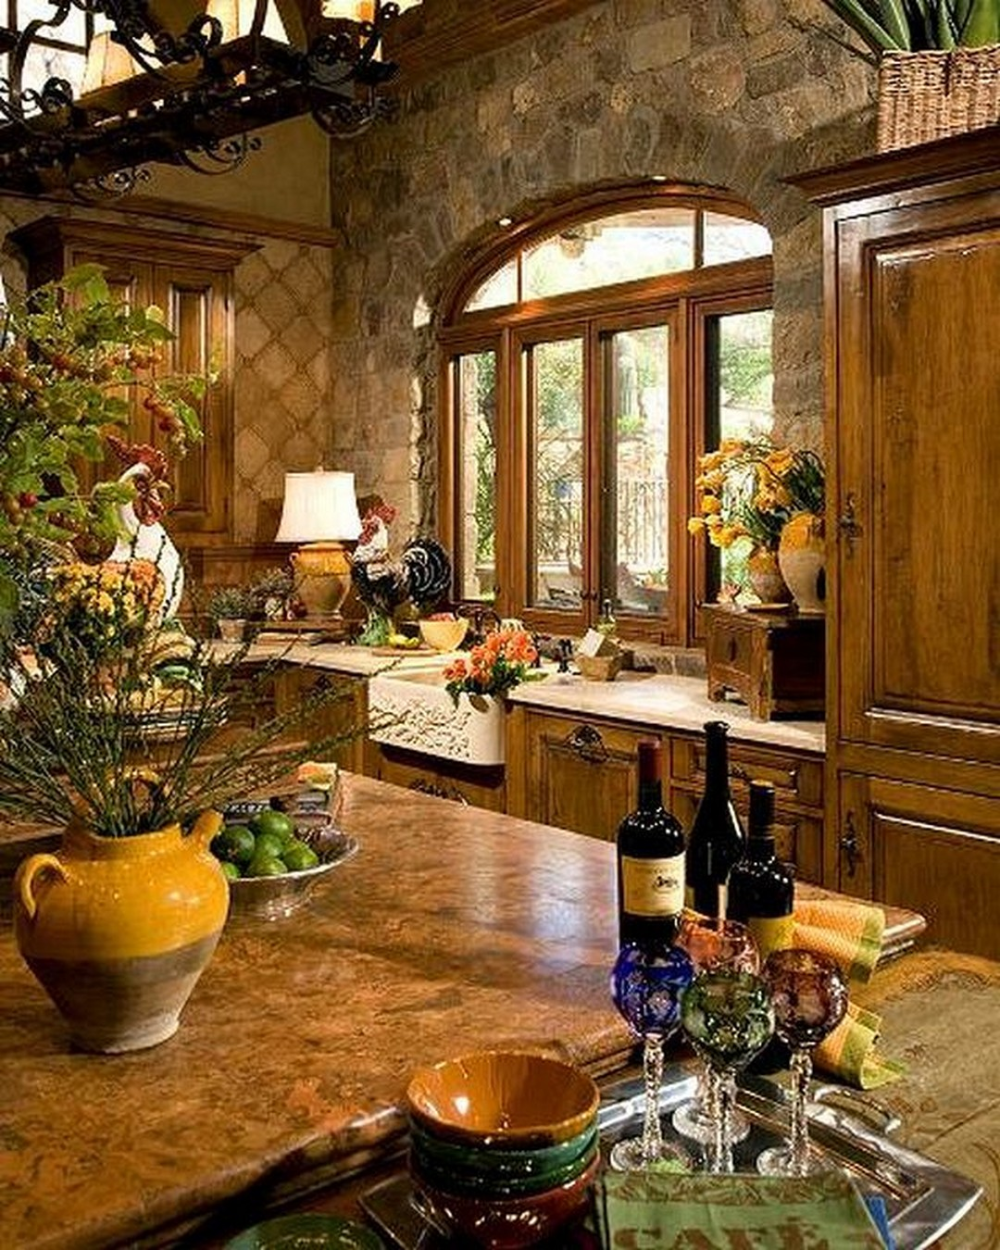 40 GORGEOUS RUSTIC ITALIAN HOME STYLE INSPIRATIONS - Page 9 of 40